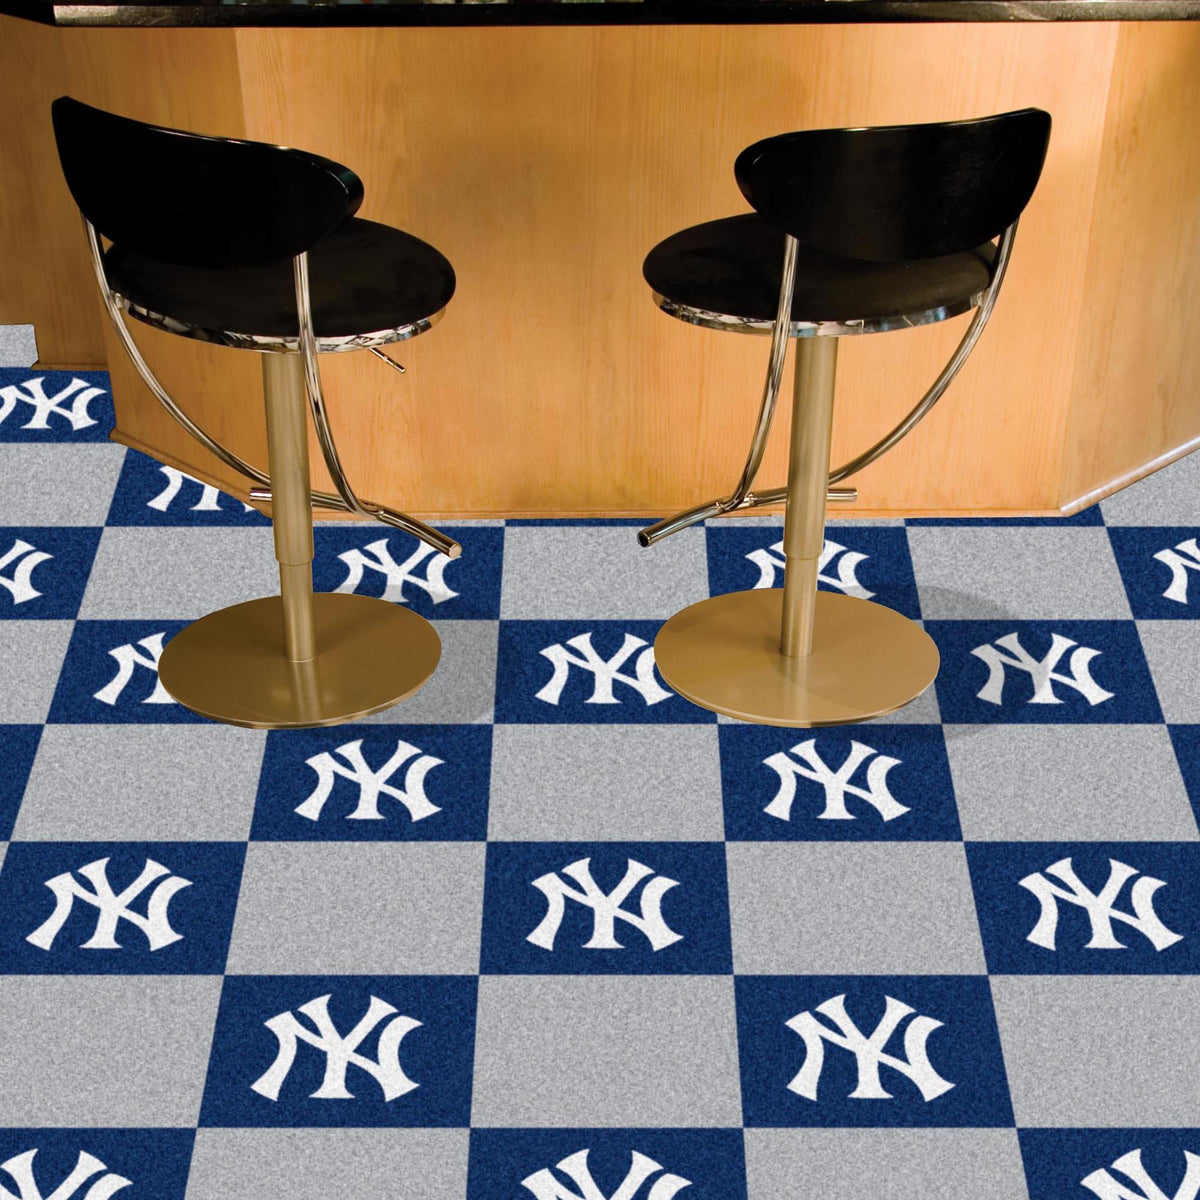 MLB - Team Carpet Tiles MLB Mats, Carpet Tile Flooring, Team Carpet Tiles, MLB, Home Fan Mats New York Yankees